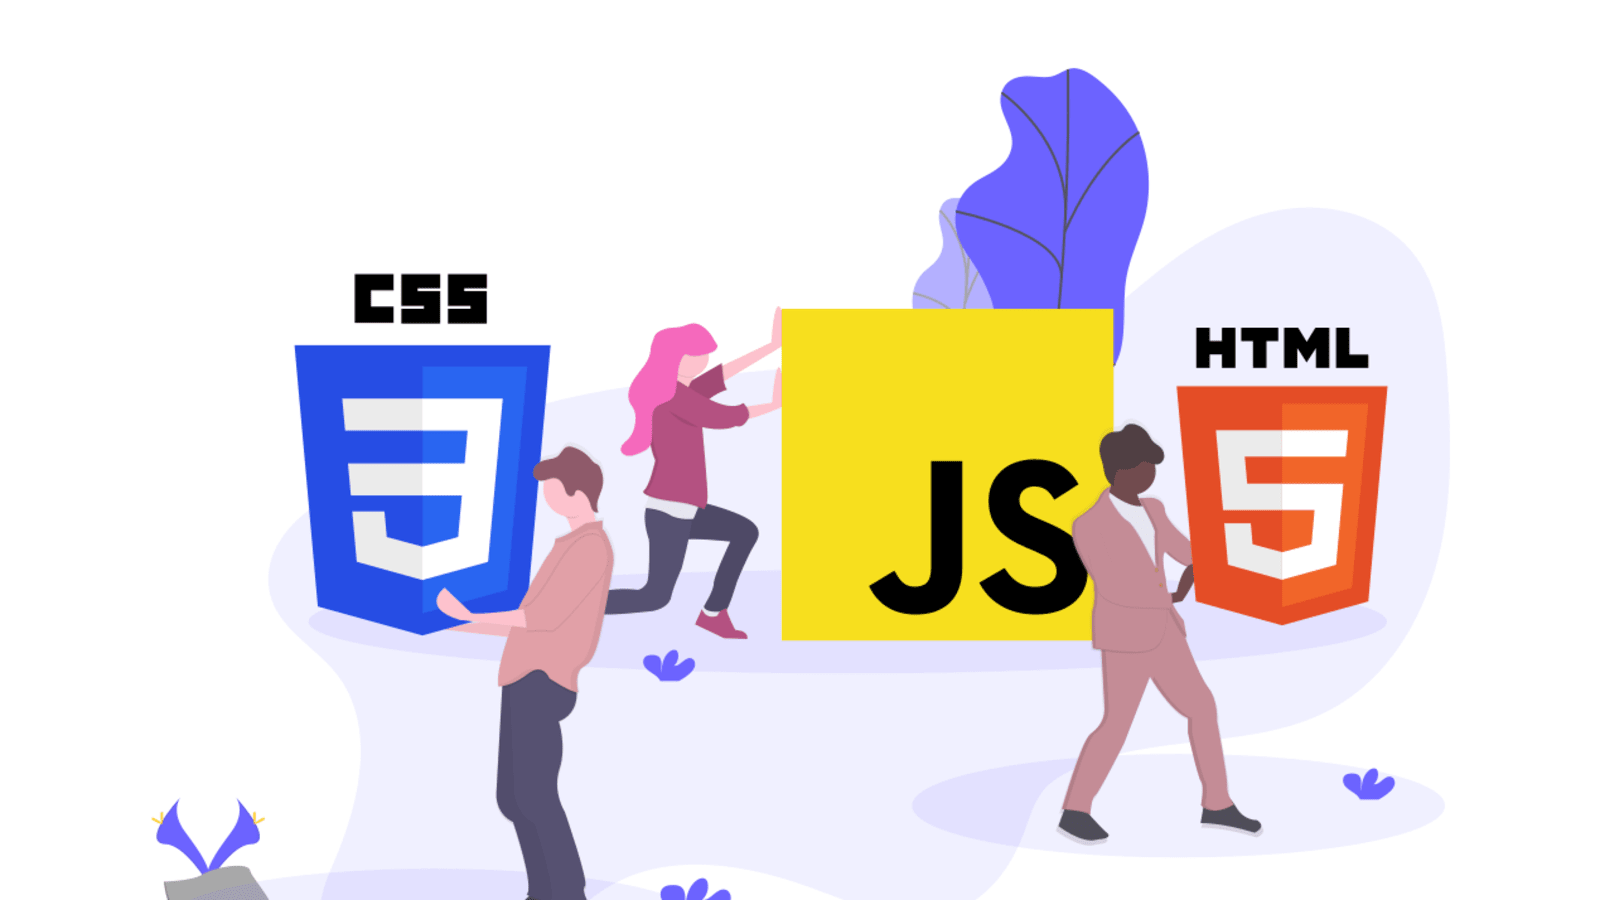 HTML&JAVASCRIPT&CSS.png